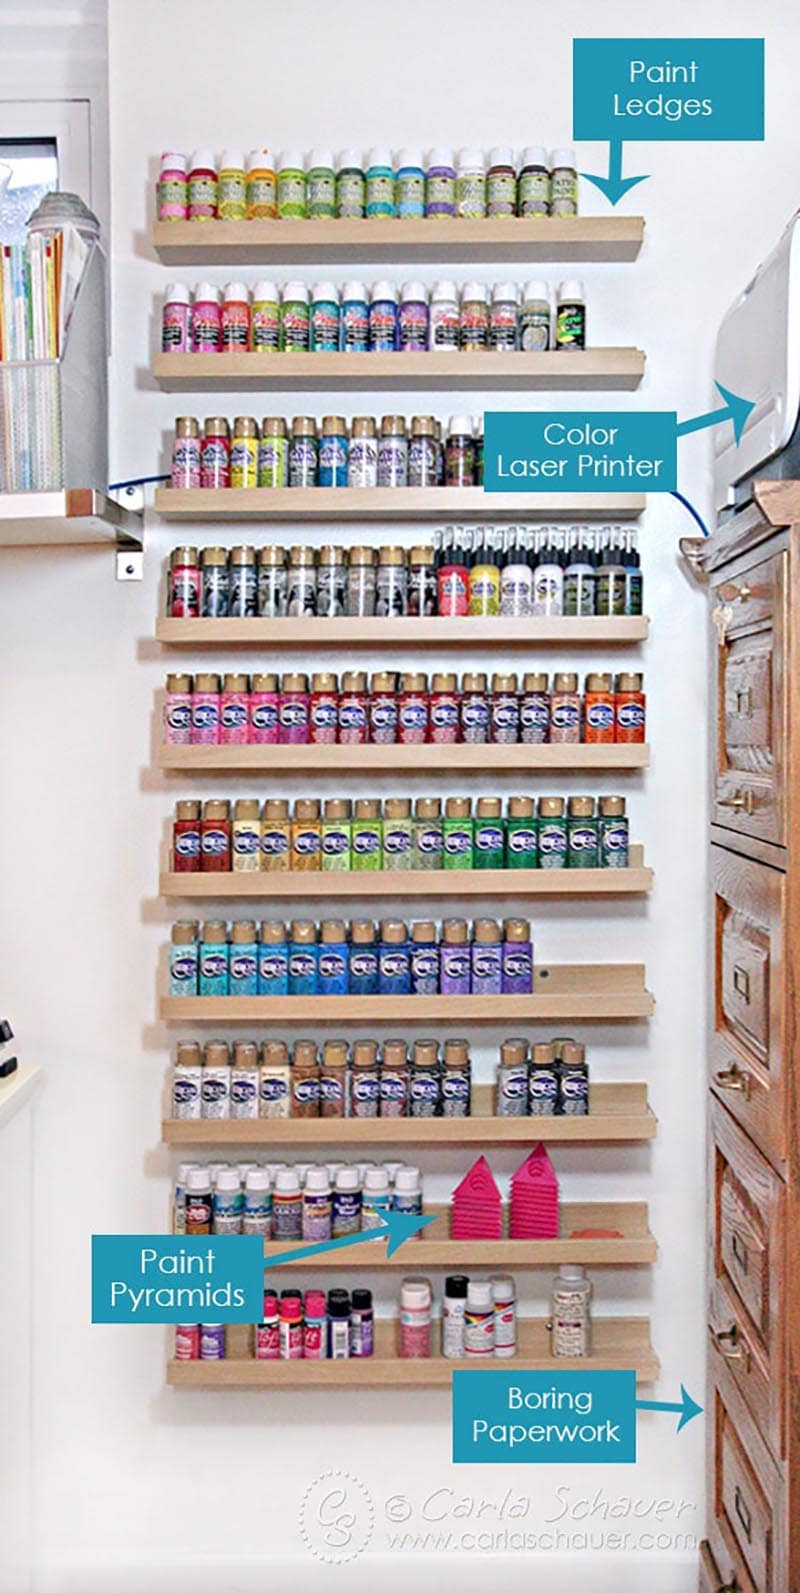 These Fun and Fabulous Craft Room Organization Hacks & Ideas are going to totally inspire you to get in your Craft Room and give it a little flair!